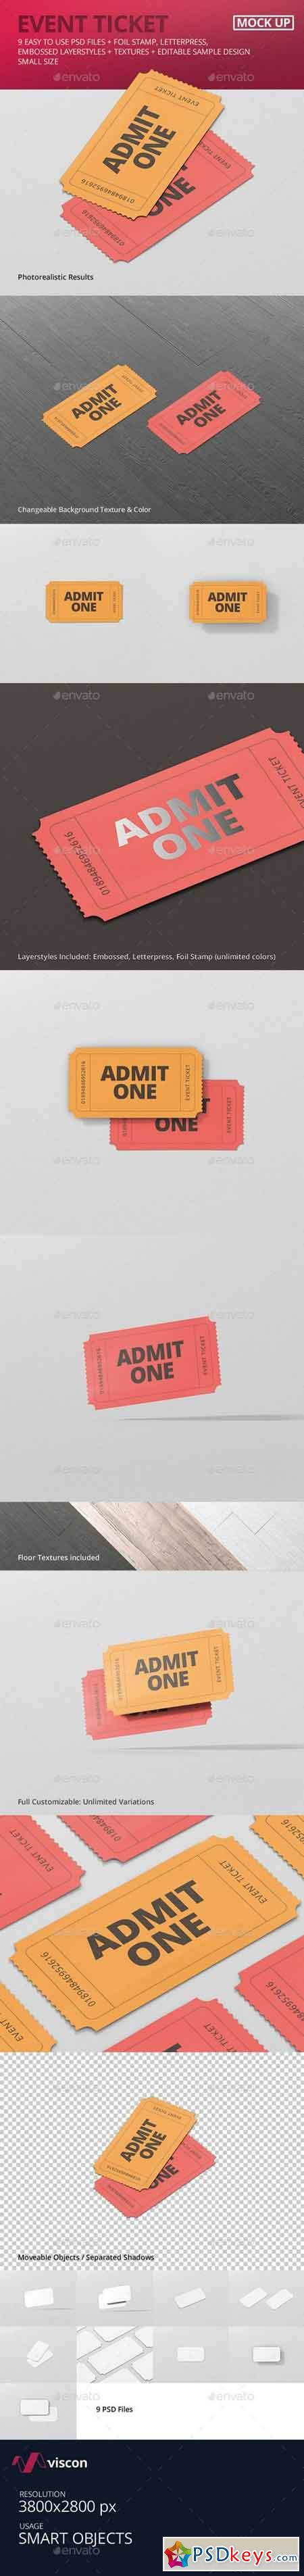 Event Ticket Mockup - Small Size 21220927